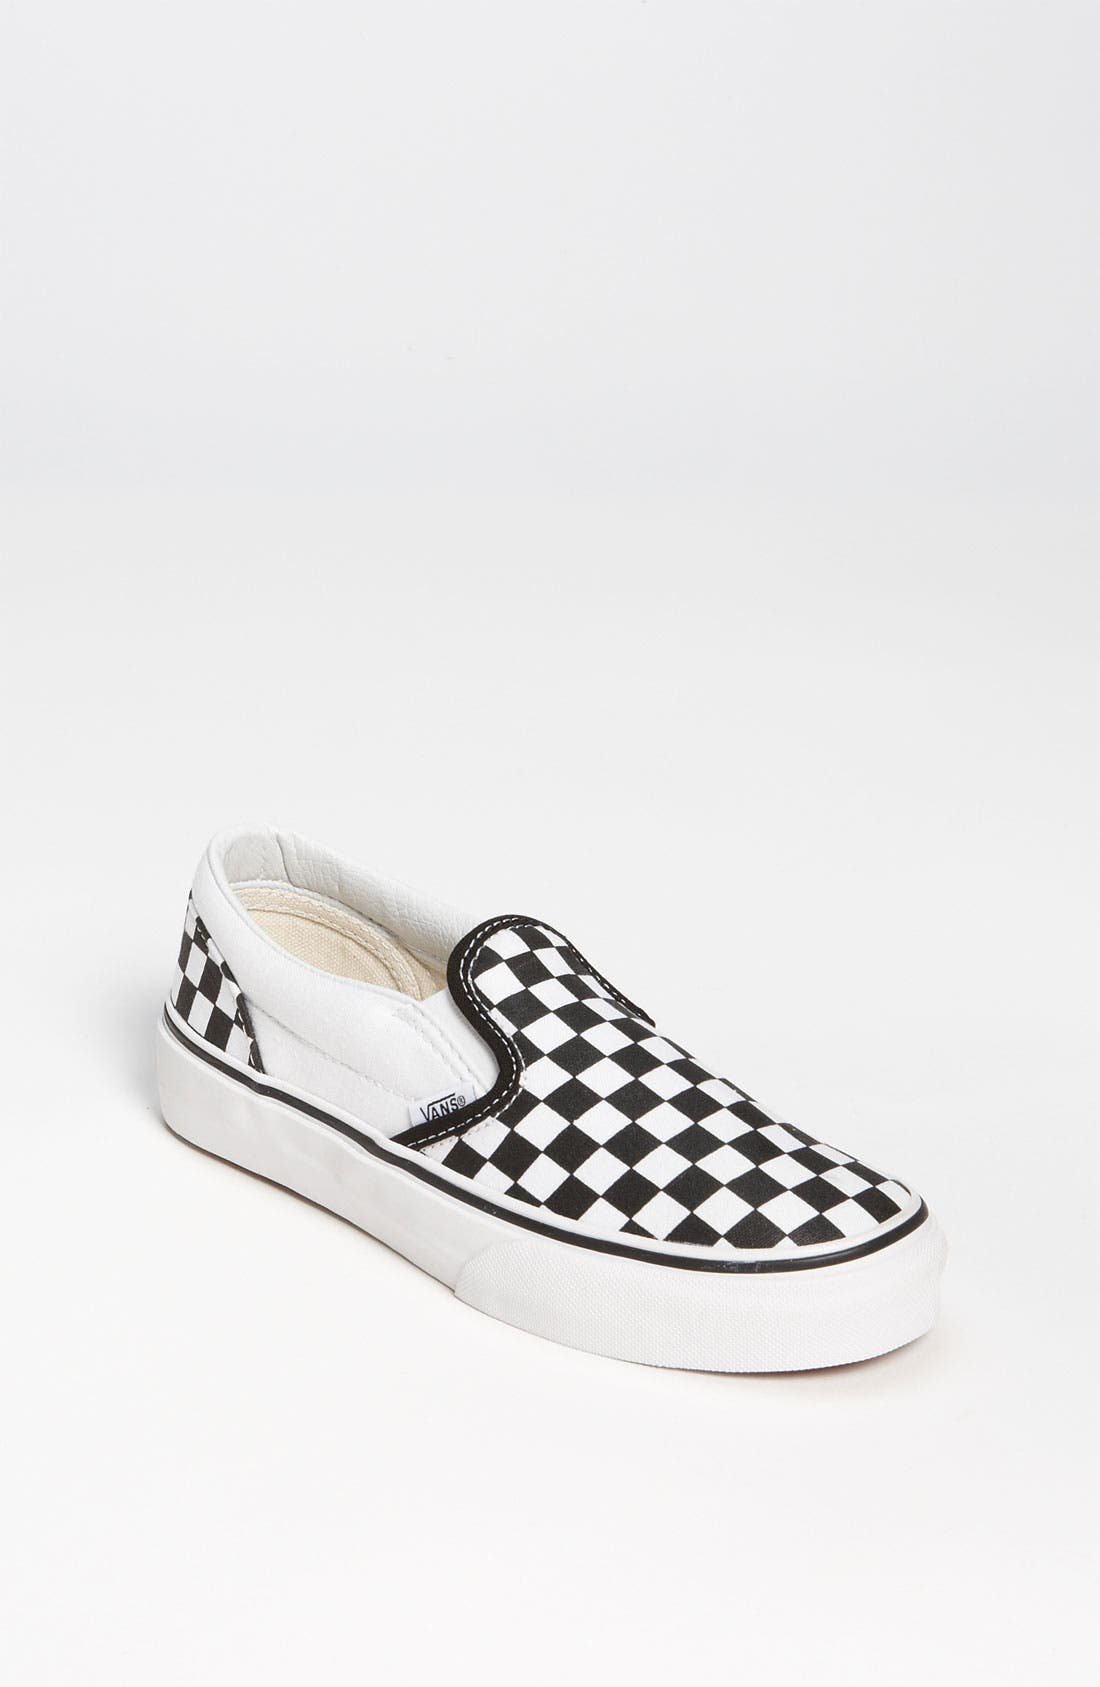 Alternate Image 1 Selected - Vans 'Classic - Checker' Slip-On (Baby, Walker, Toddler, Little Kid & Big Kid)